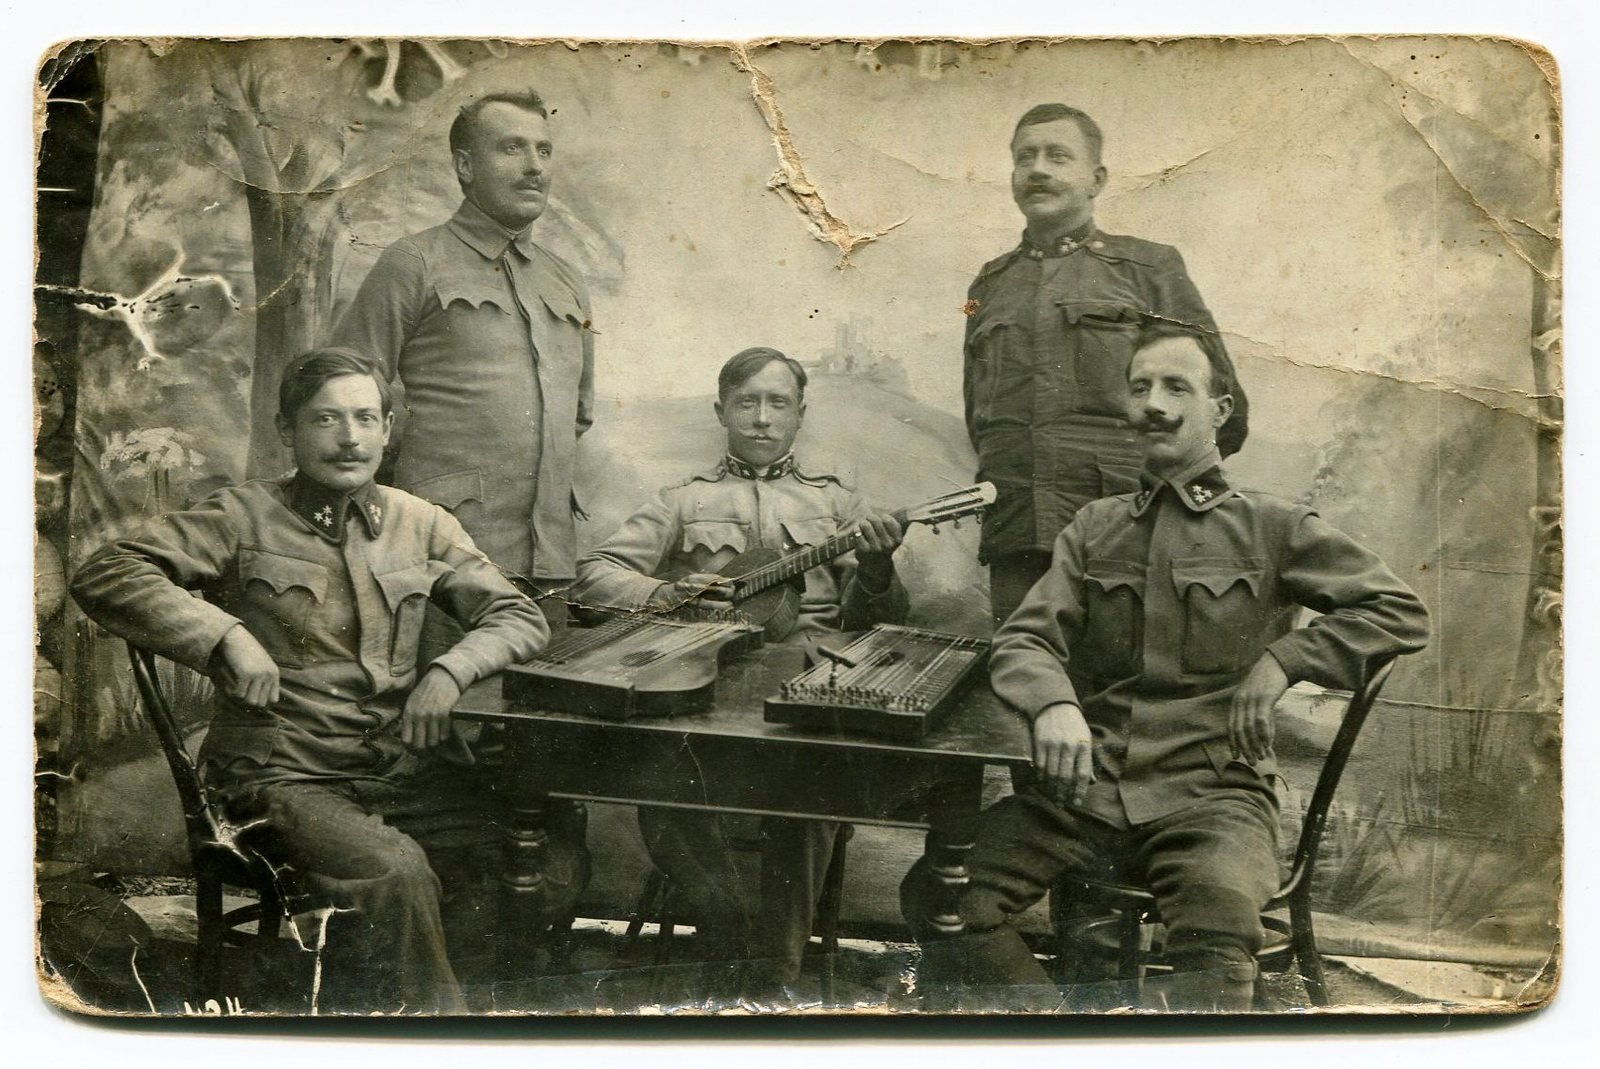 Photograph of Michael Drašček (seated, centre, 3rd from left) with 3 soldiers, undated, Europeana 1914-1918 / Rada Čopi, CC BY-SA